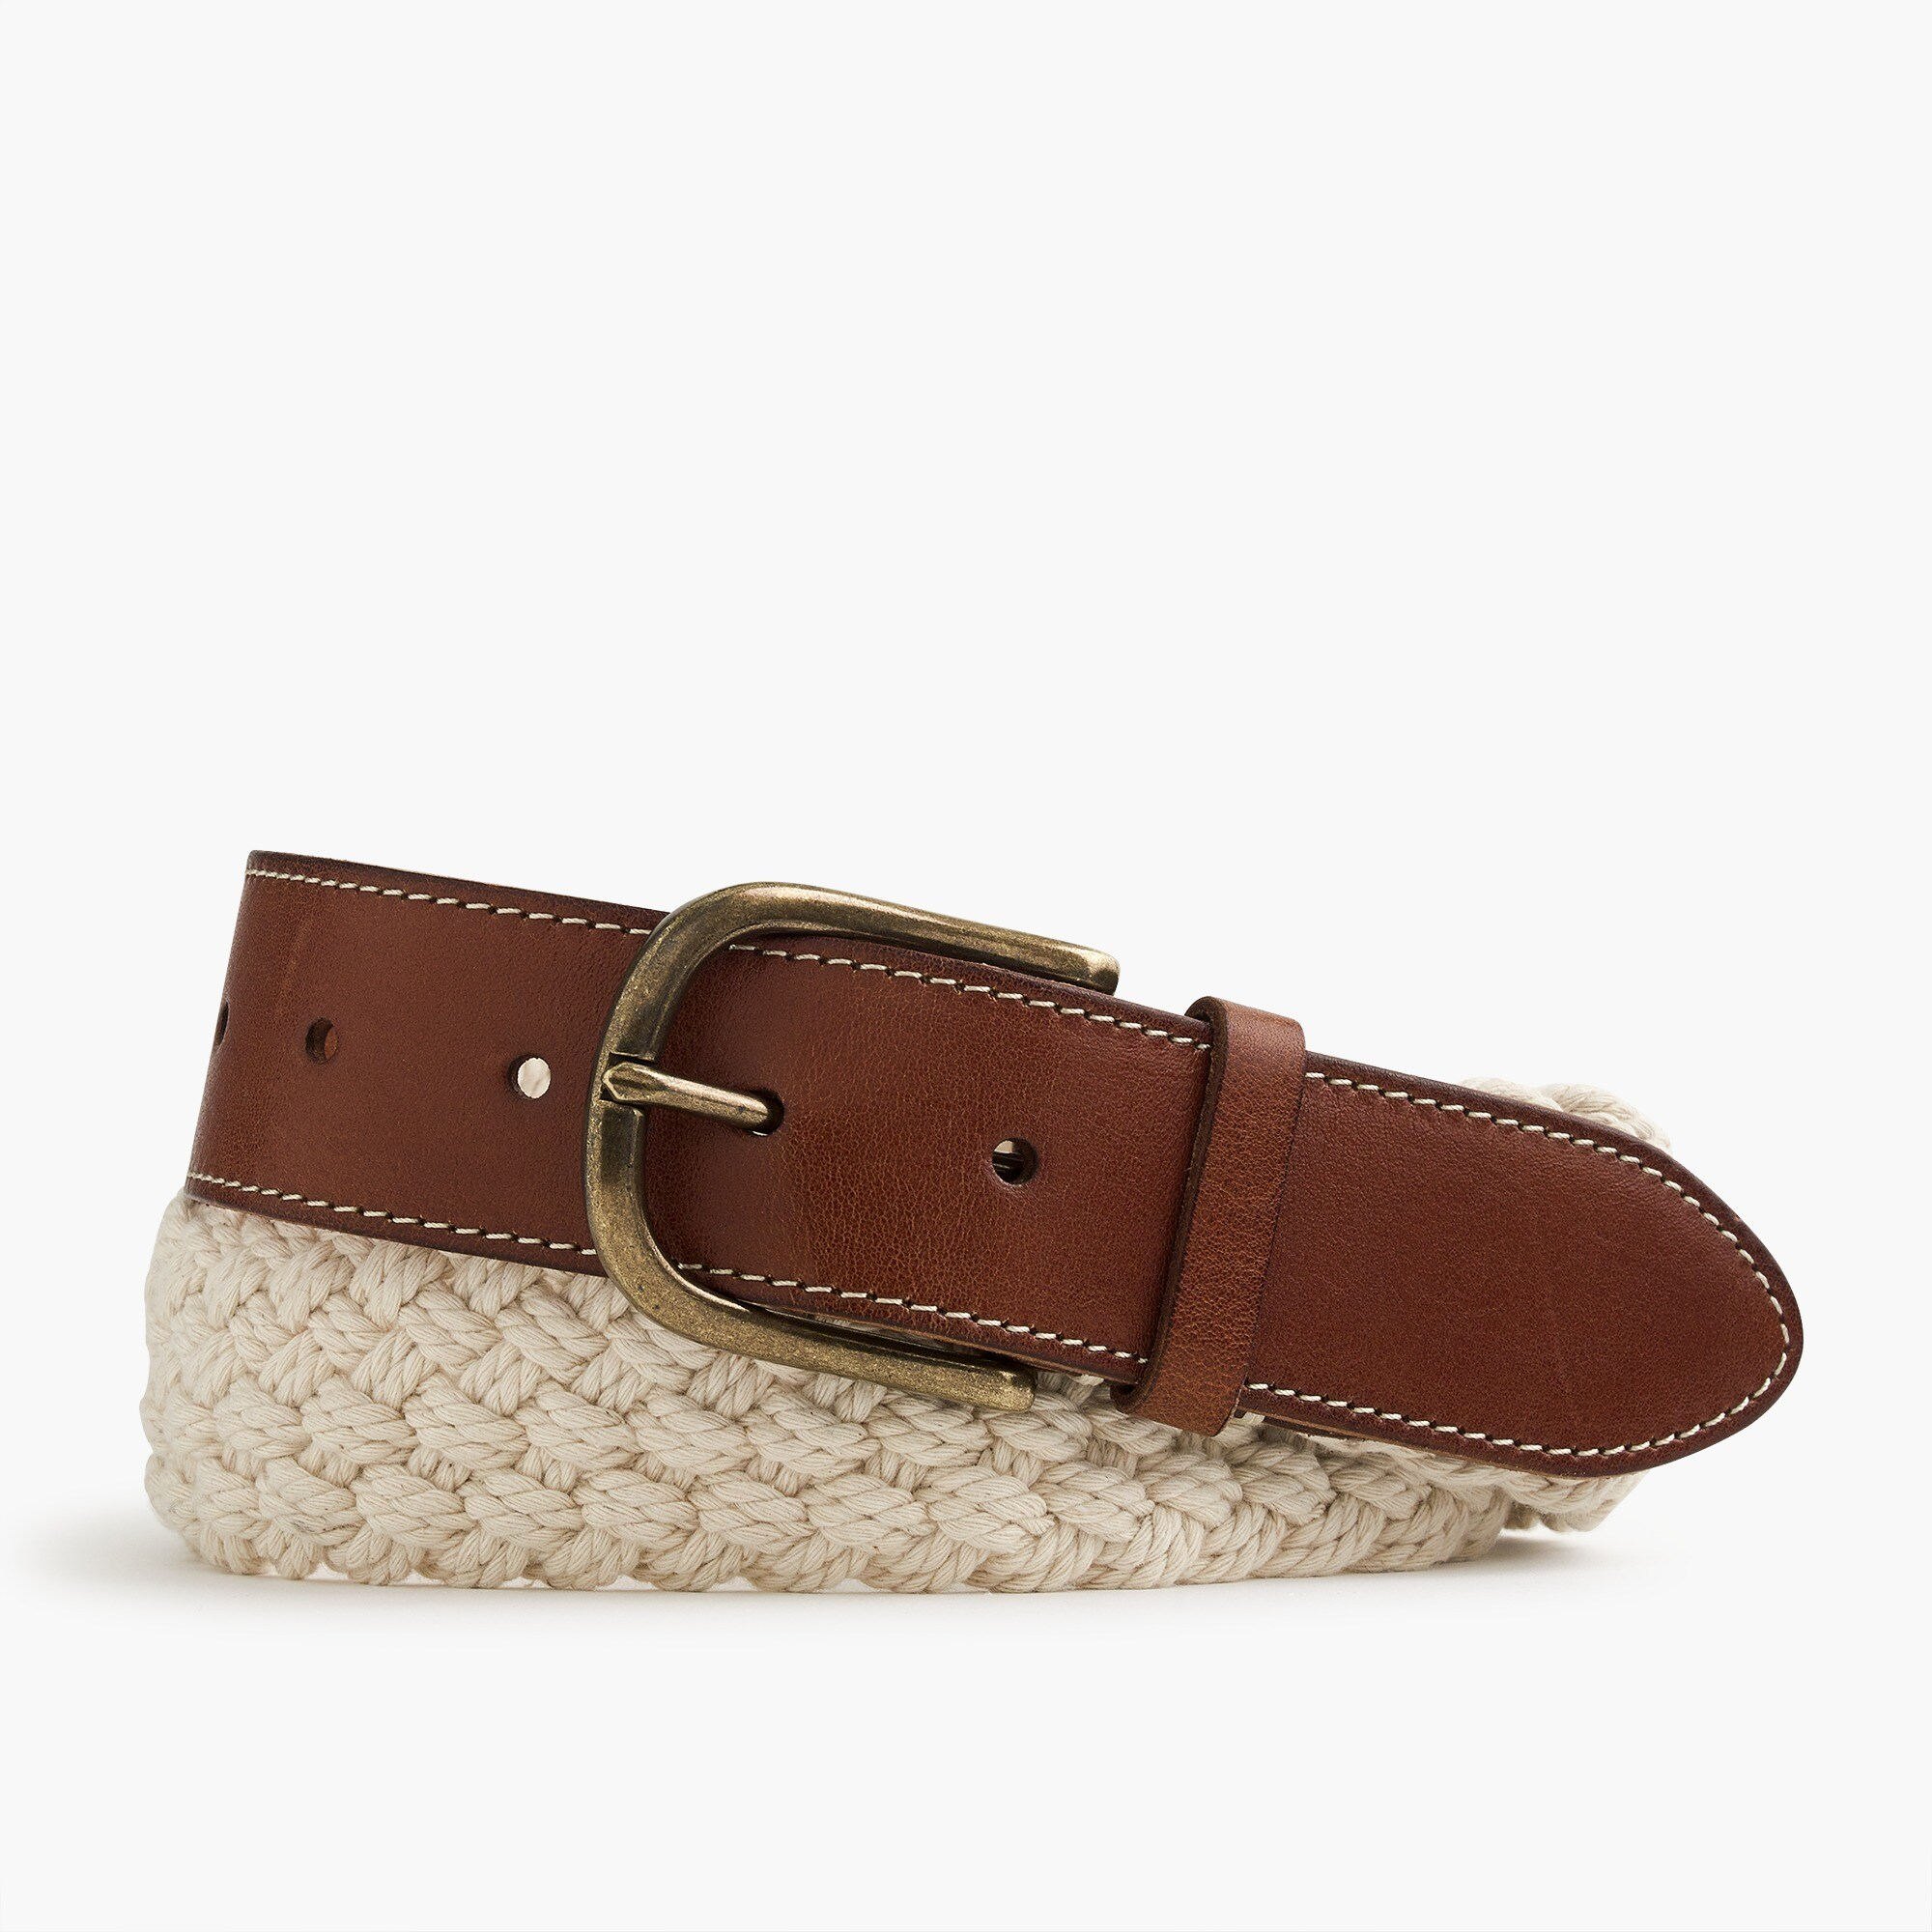 Braided cotton belt in sand